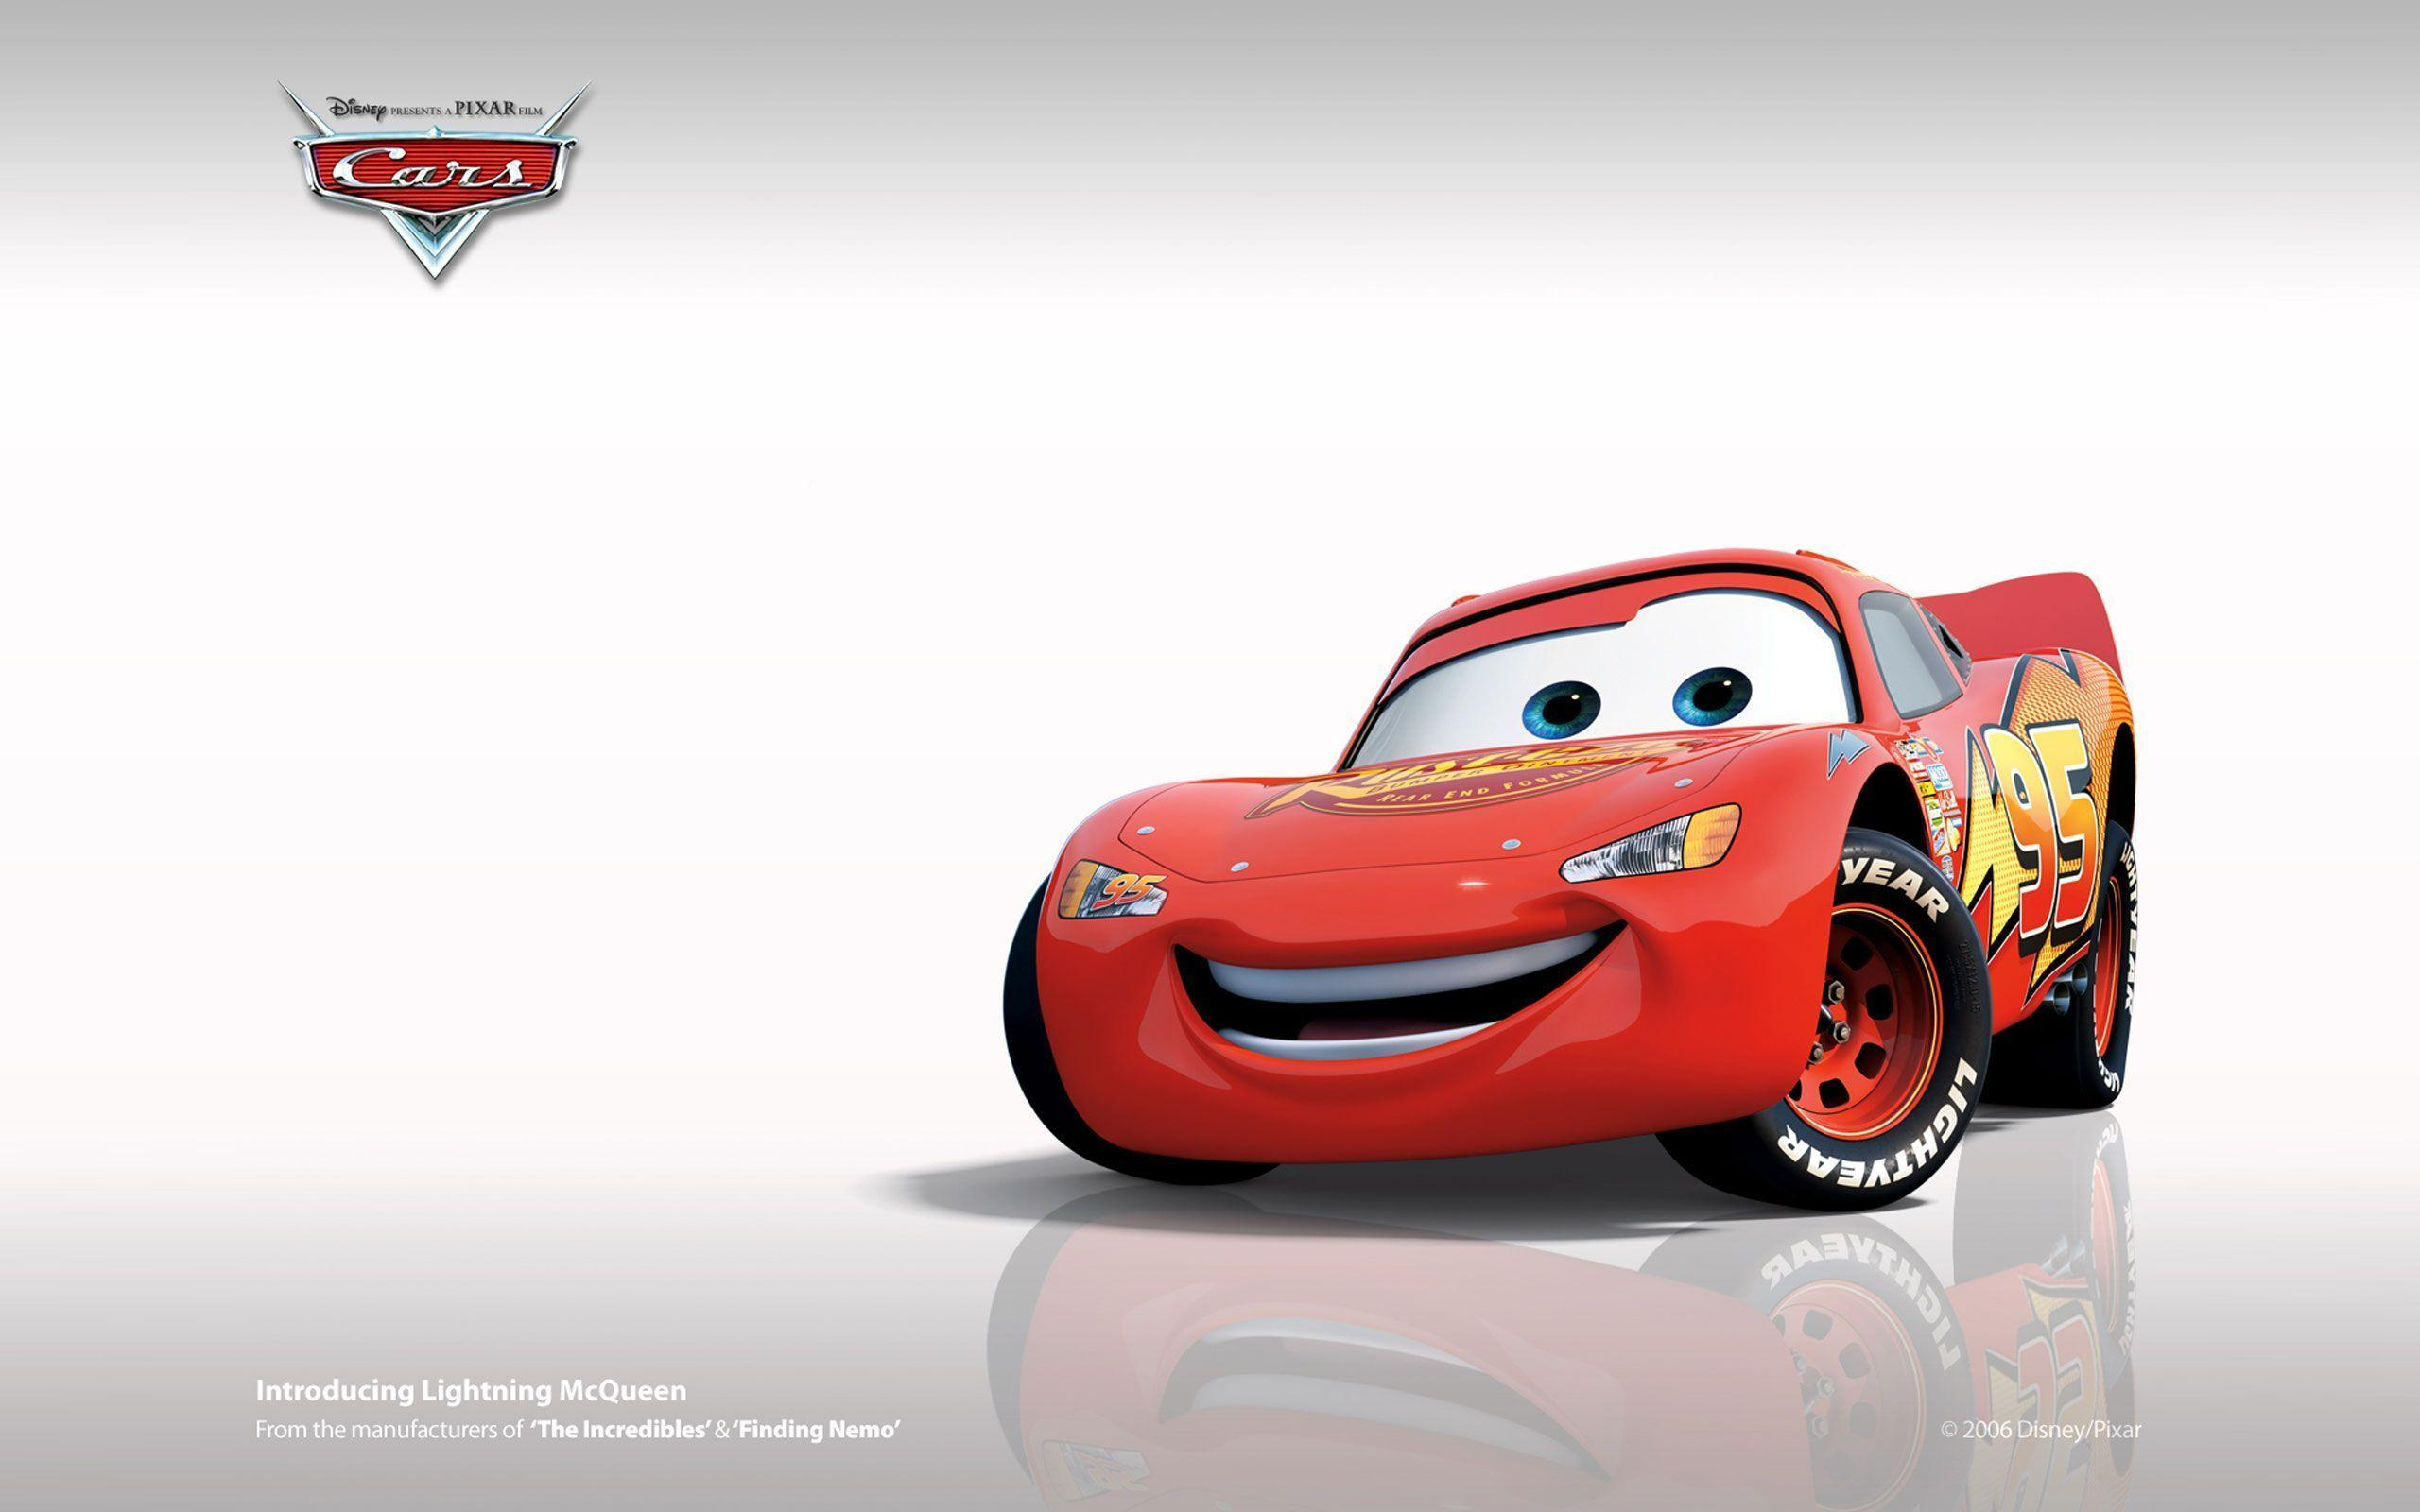 Wallpapers Cars Cartoon - Wallpaper Cave